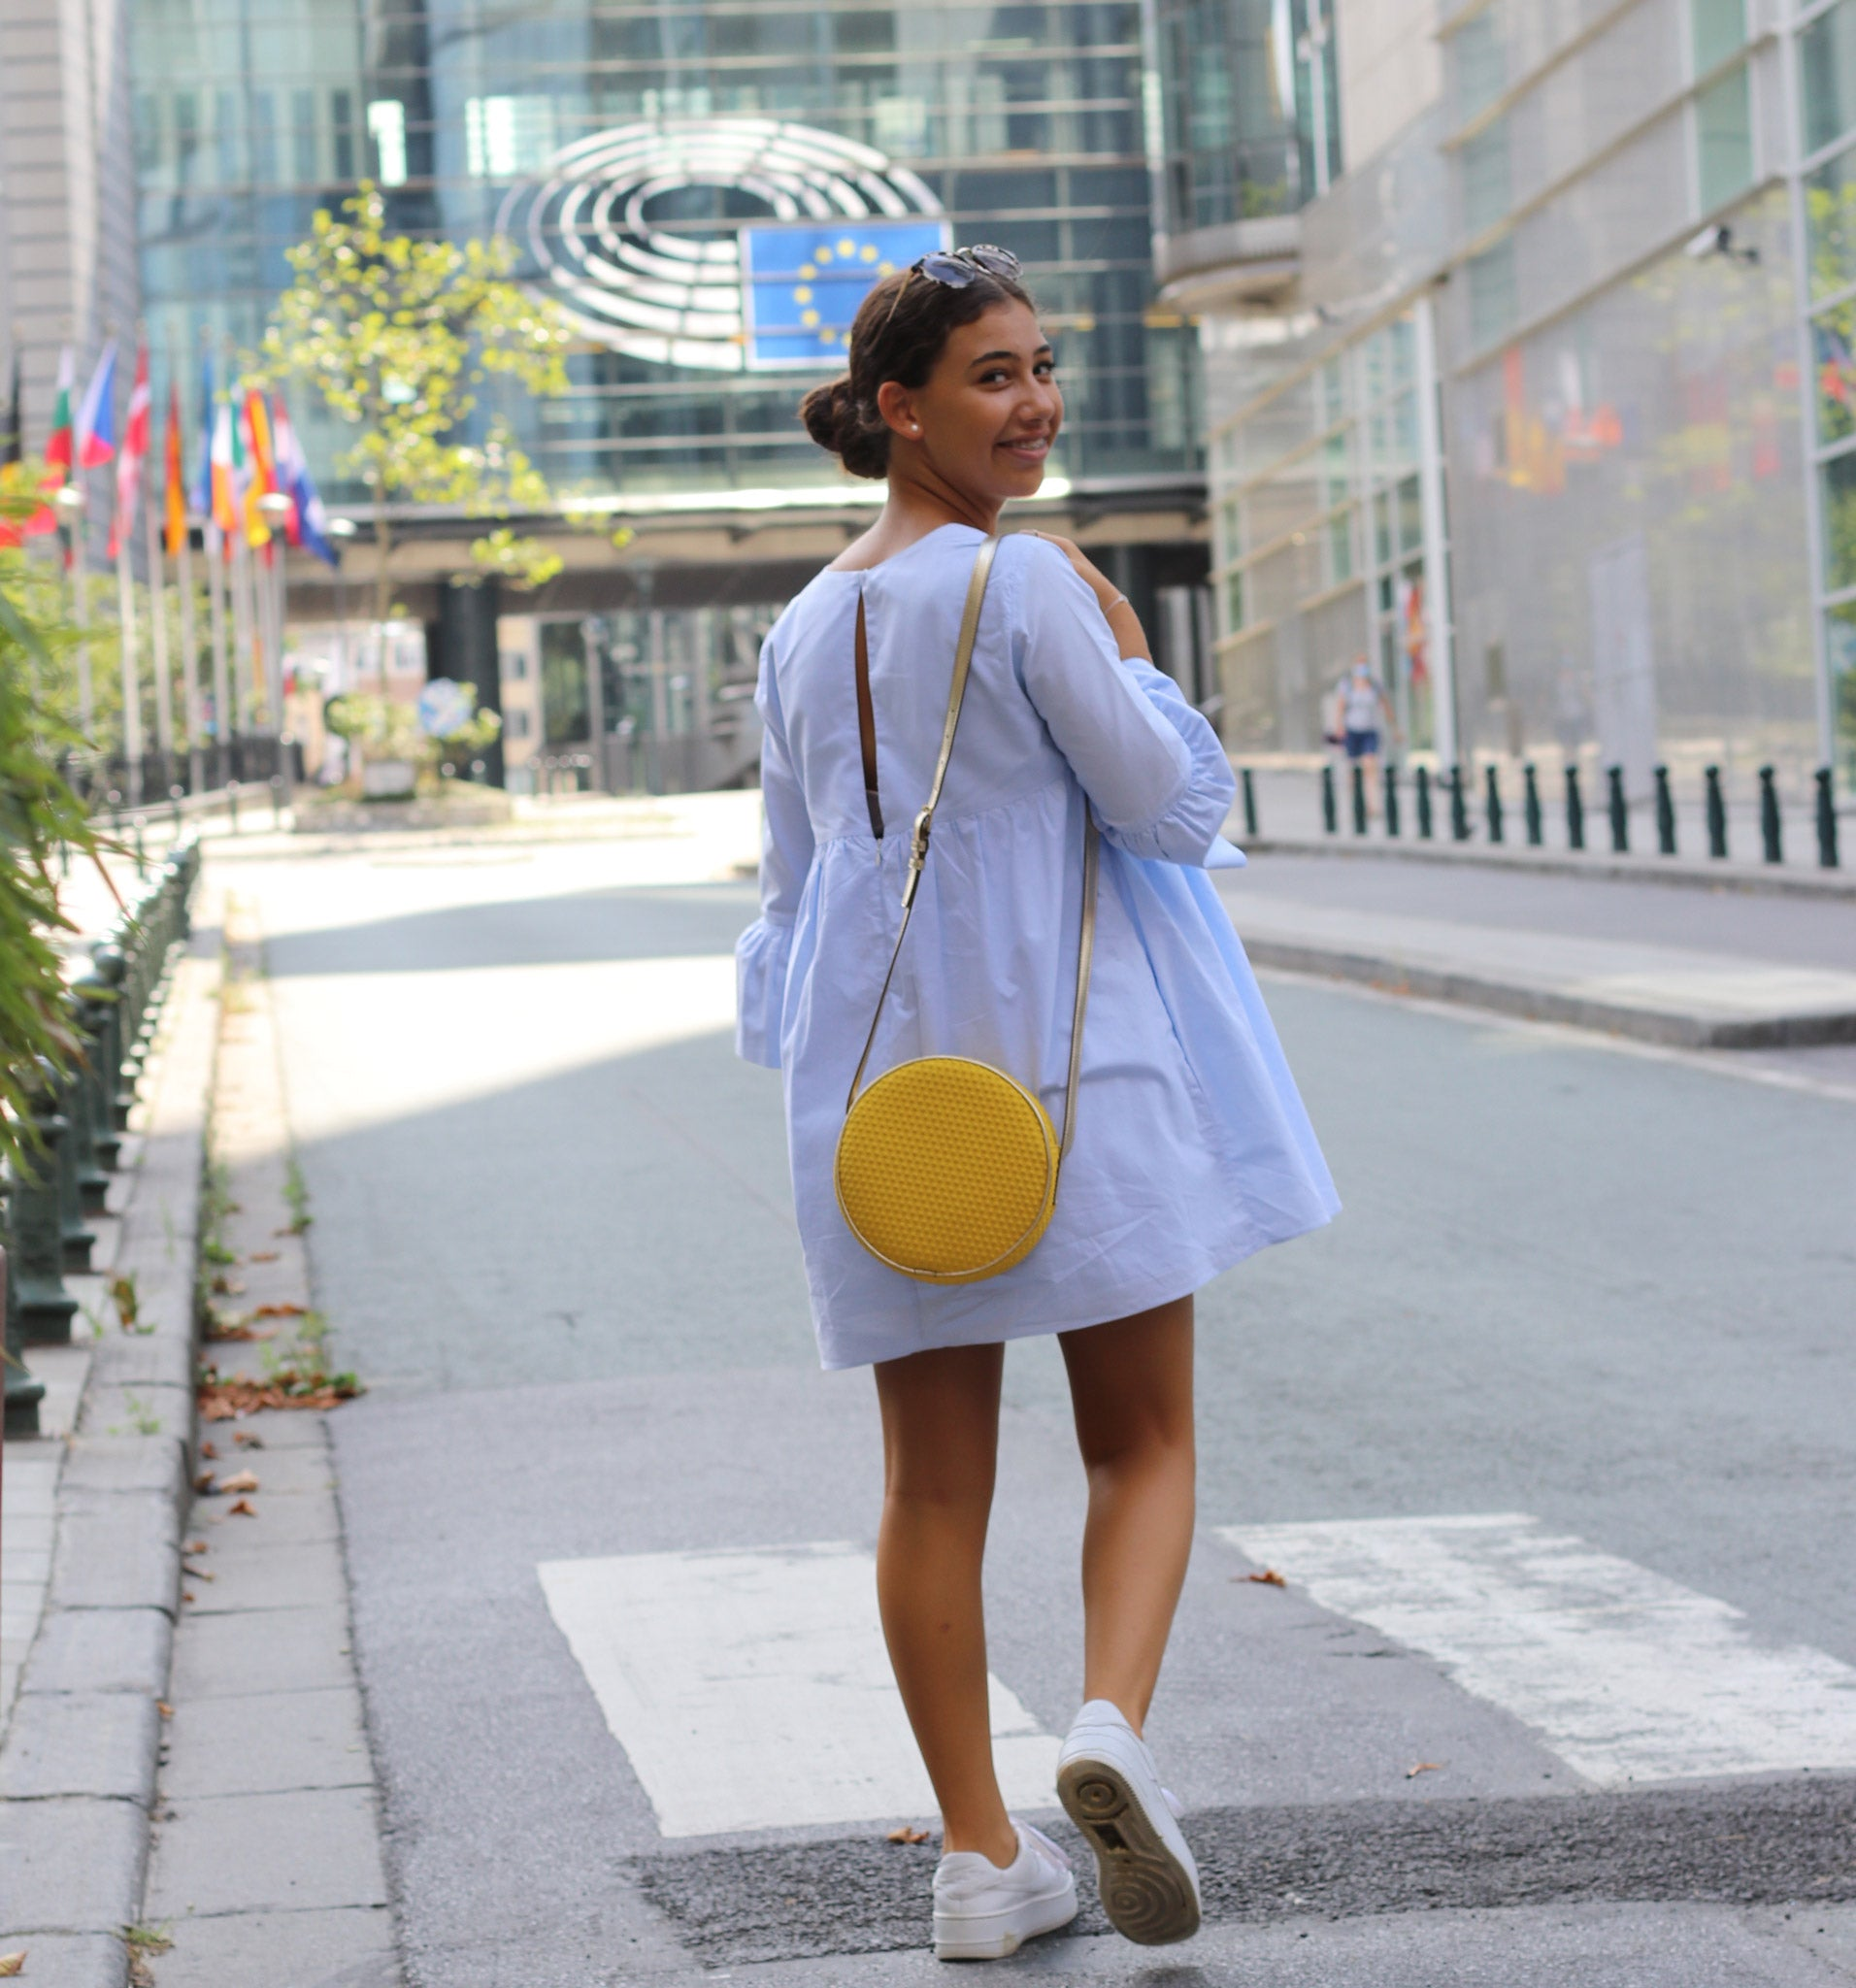 Bags-by-Sumageza-SU-young-lady-walking-into the EU-Parliament-building-dressed-in-a-light-blue-summer-dress-and-wearing-the-shoulder-bag-boite-de-chocolat-neo-in-bright-yellow-color